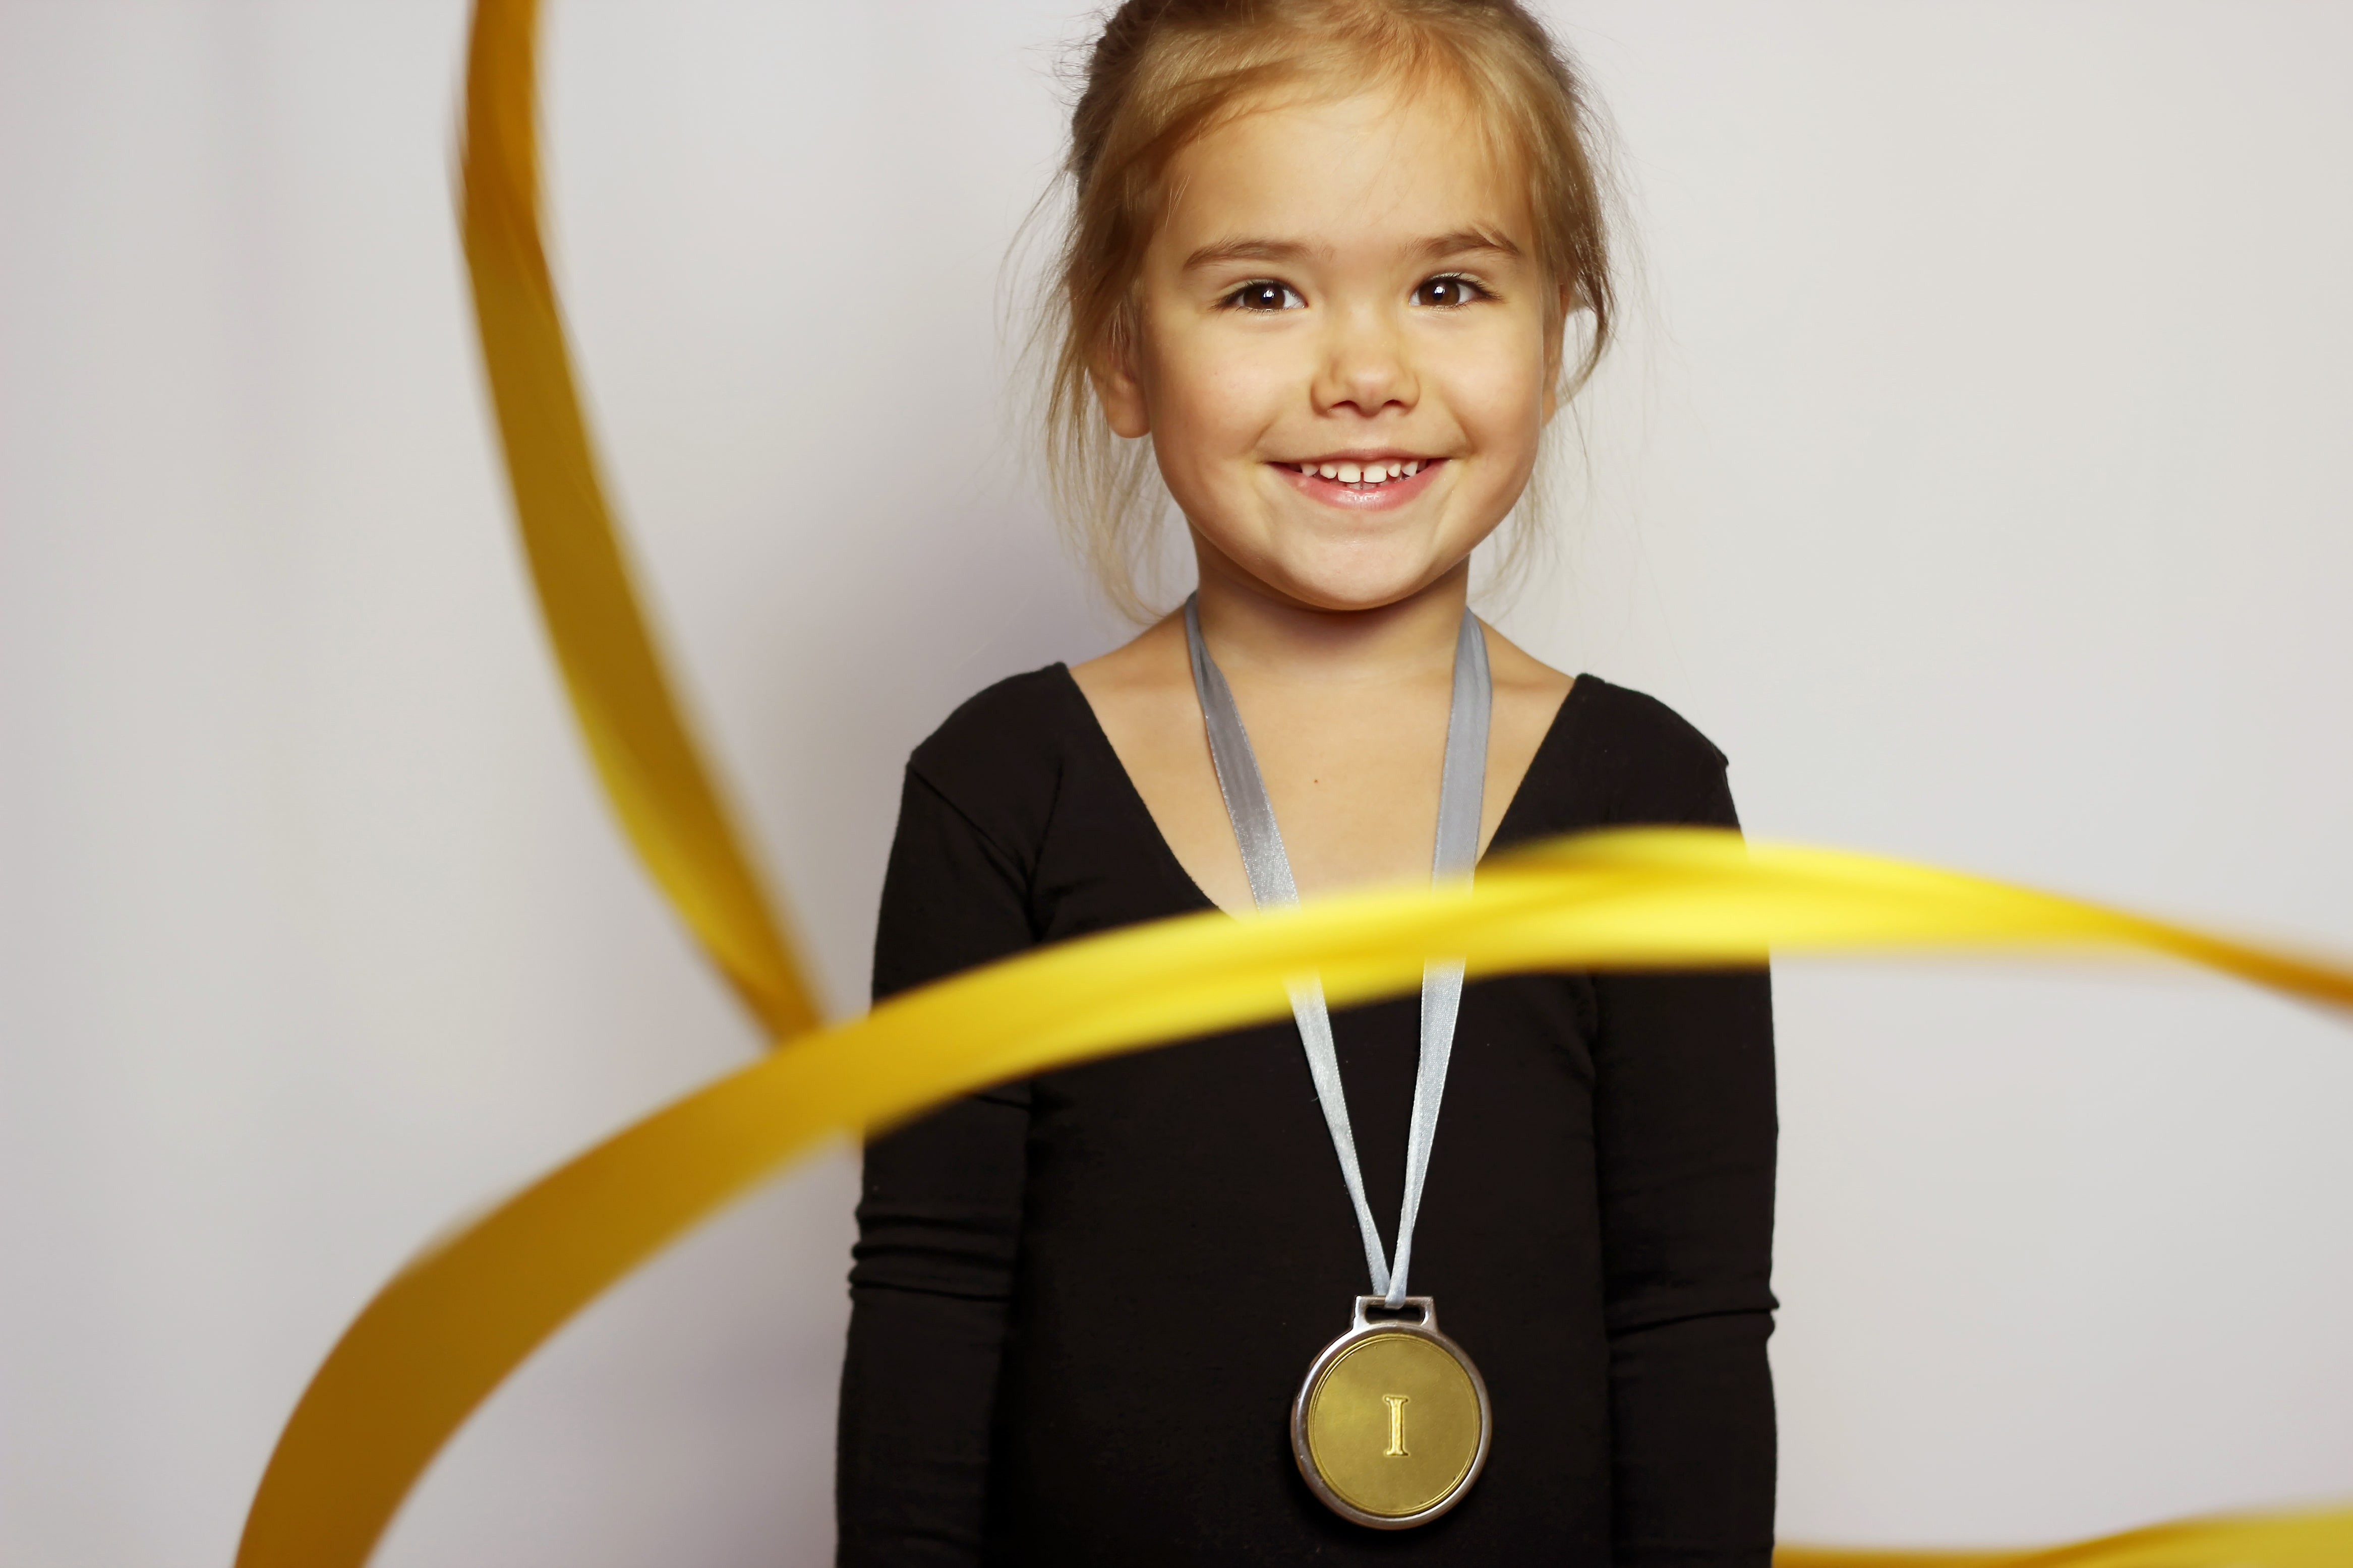 Little girl with gold medal around her neck